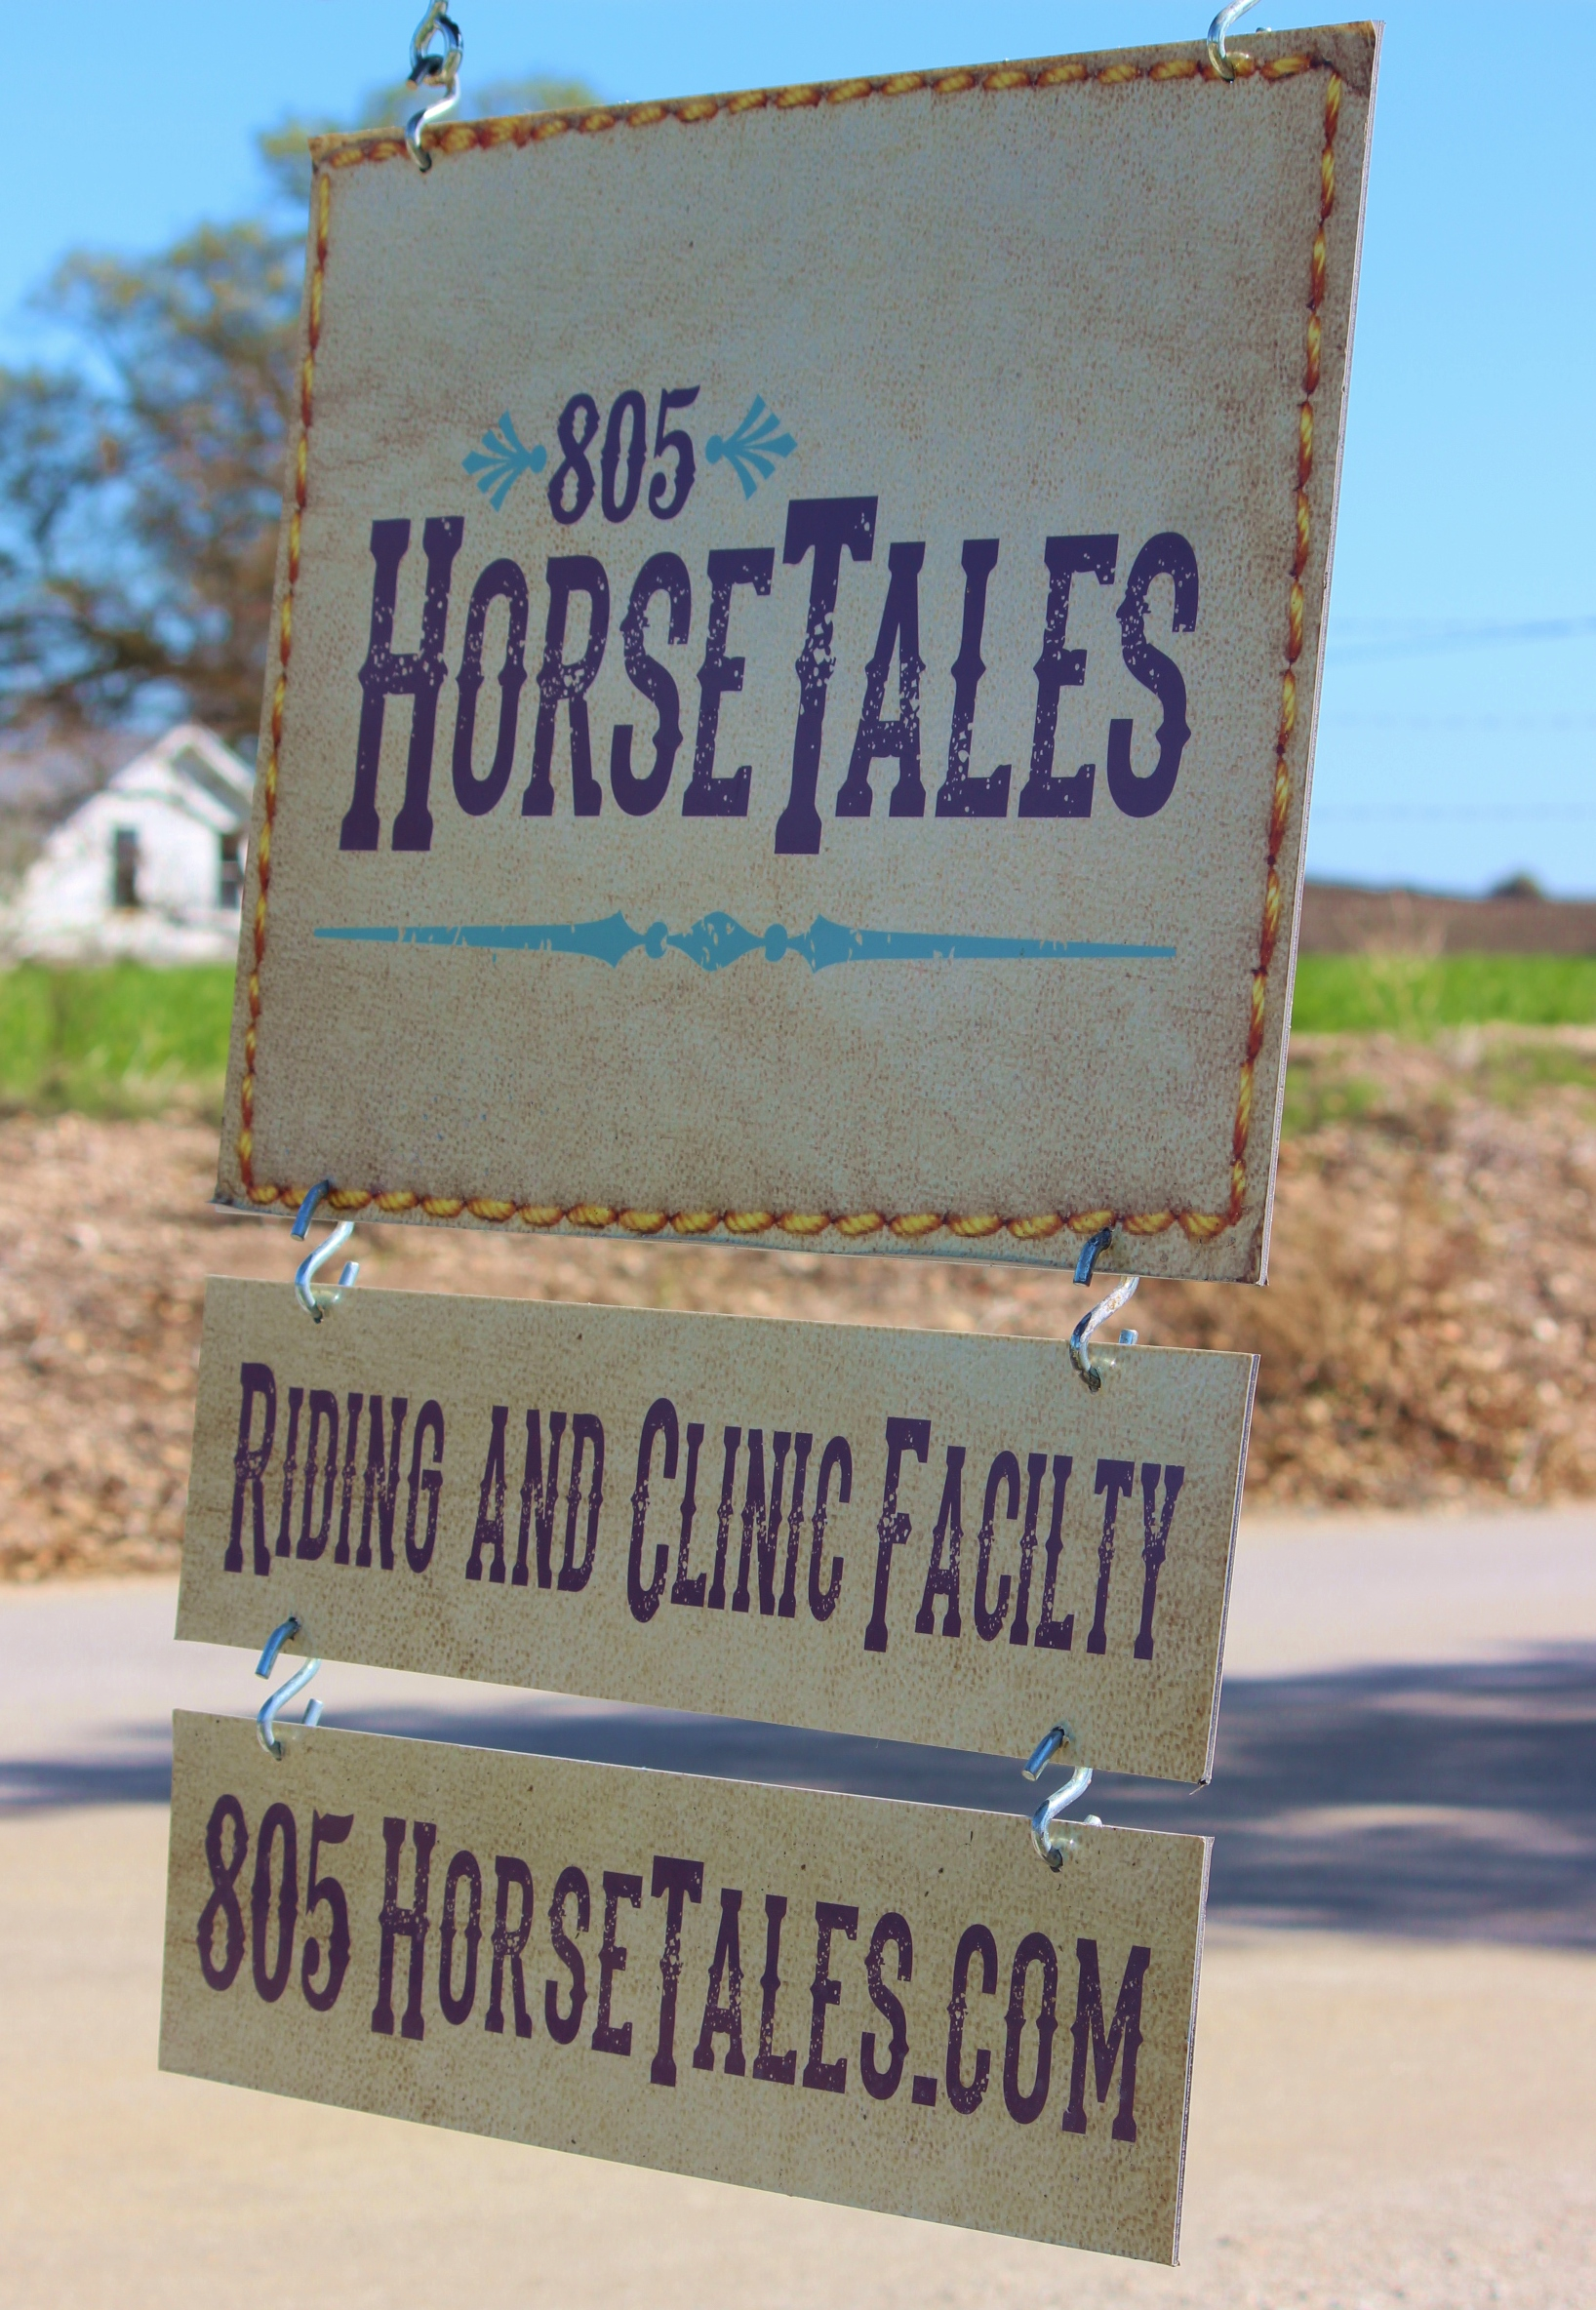 My home away from home - horsey Shangri-La and home of 805 Vaquero Signature Saddles, Pampered Horse products, Young Living Essential Oils and much, much more!